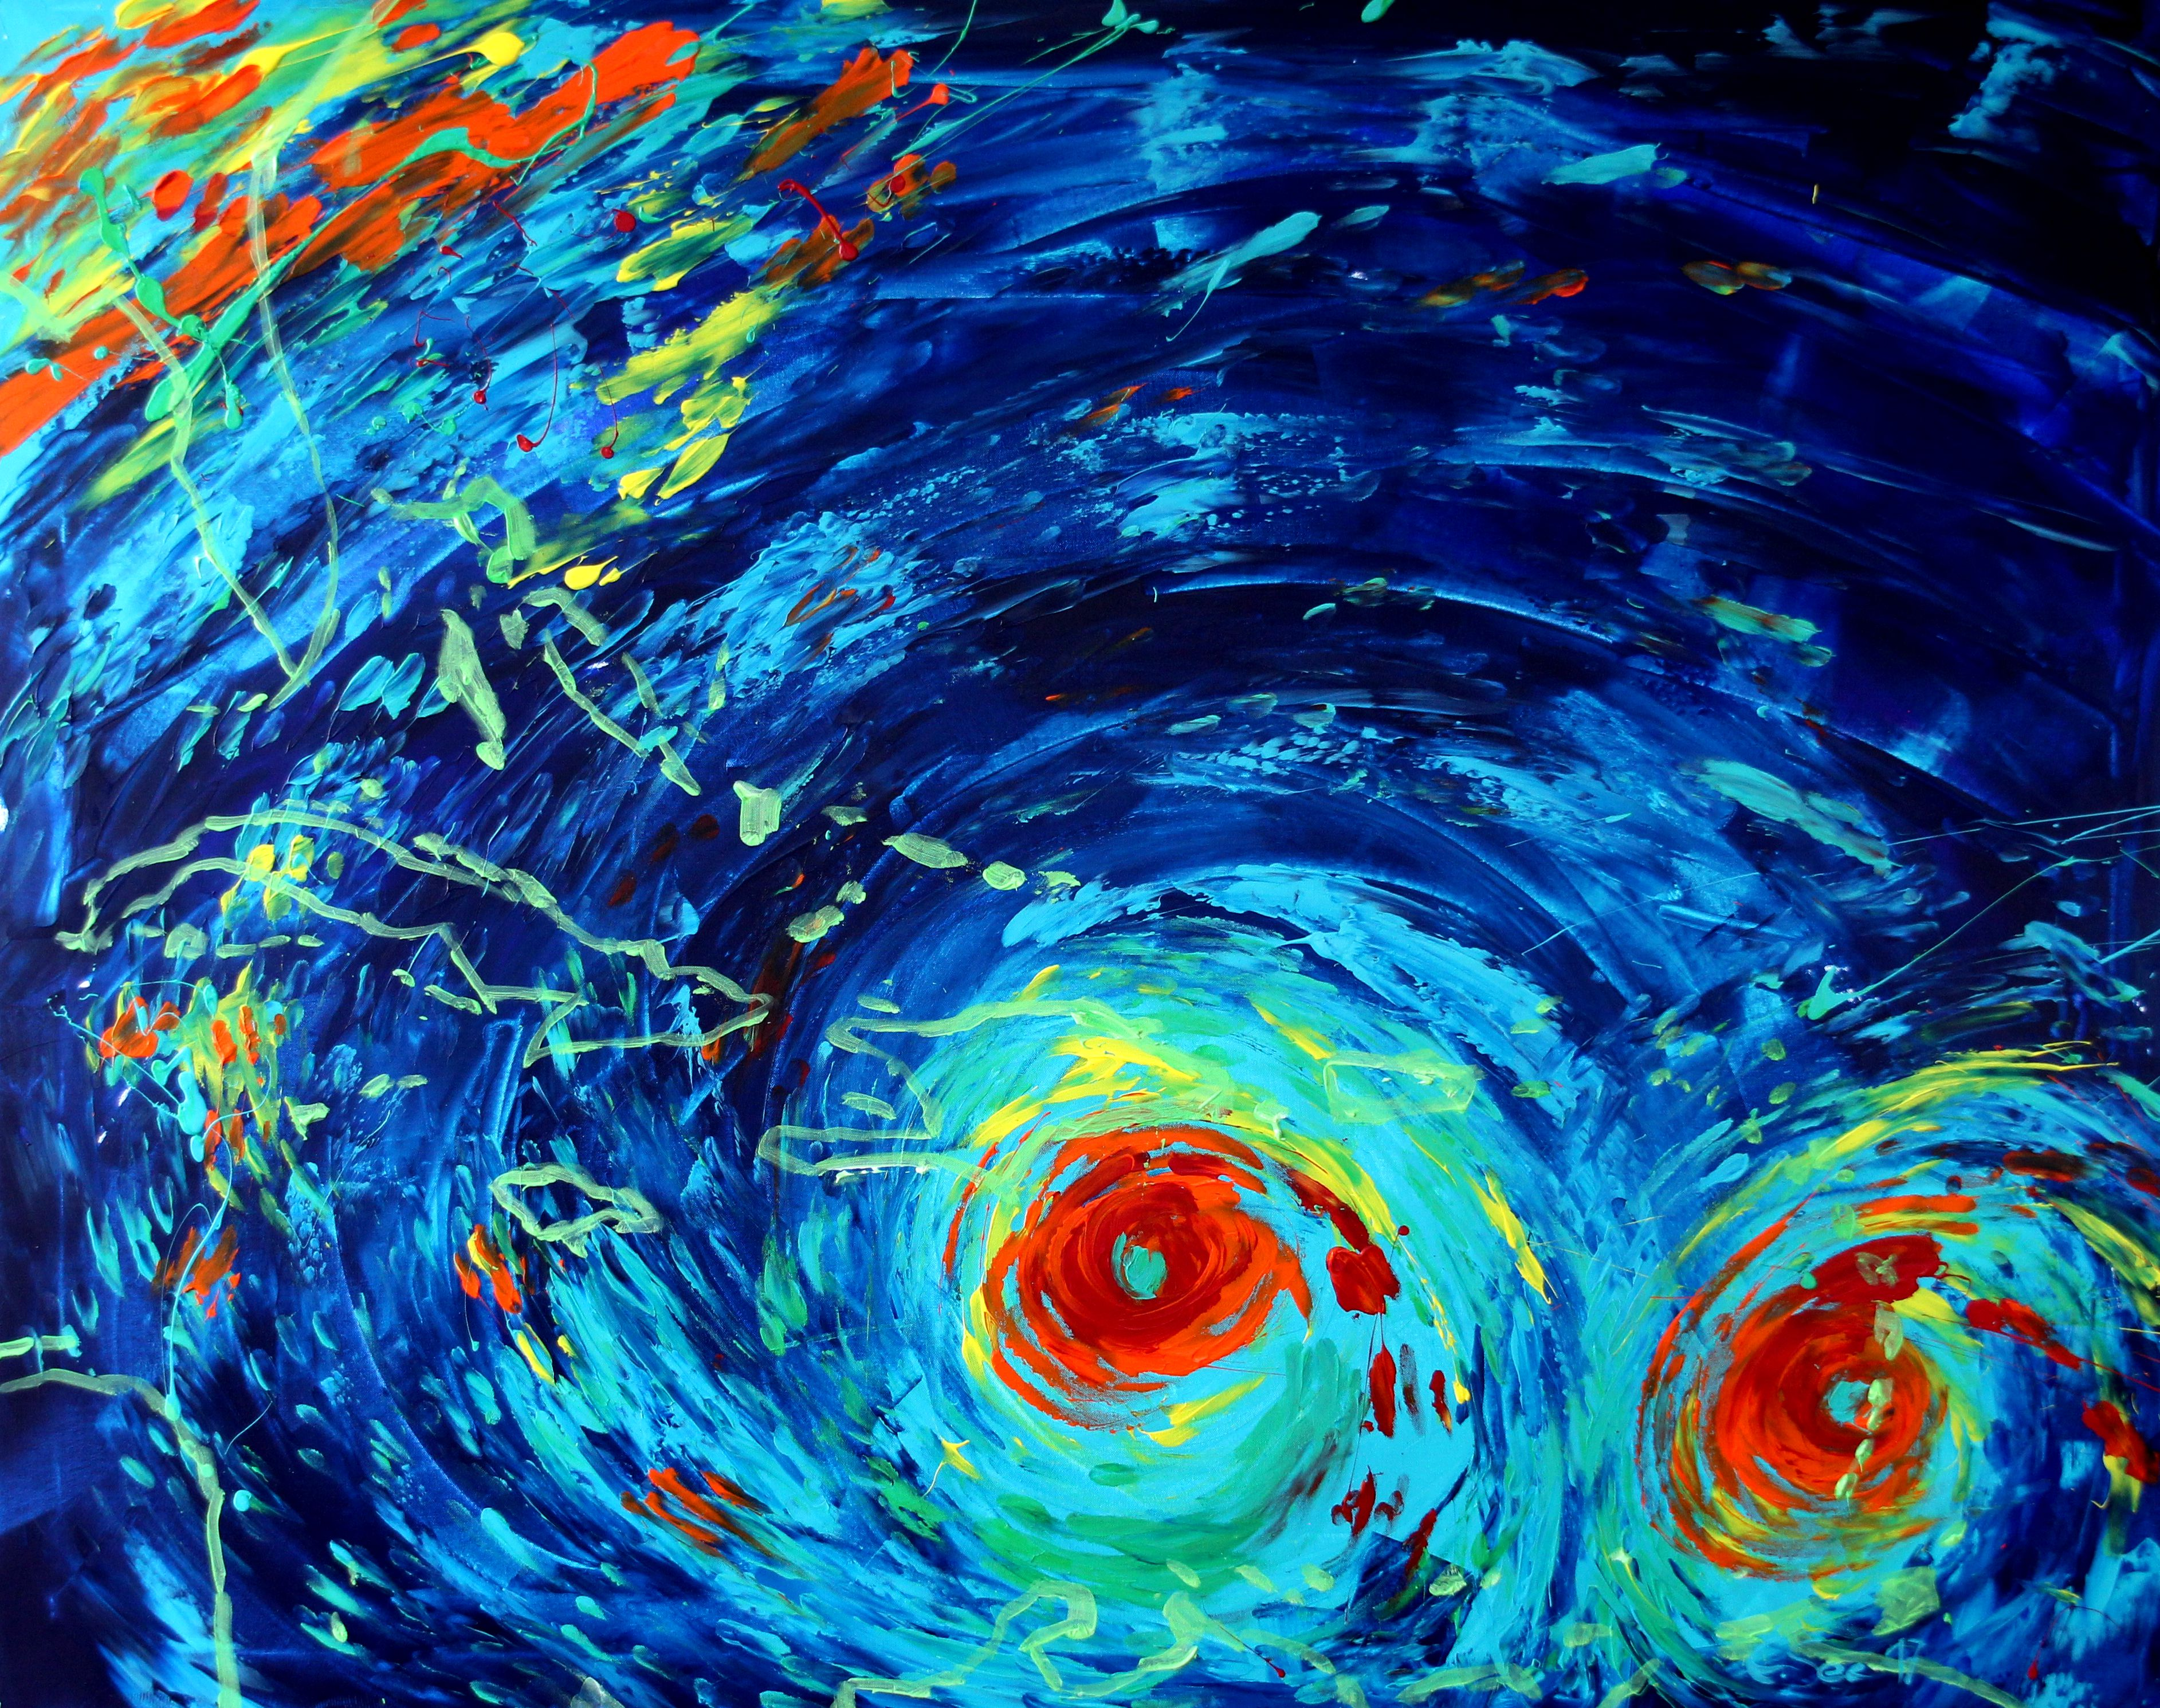 Hurricane Irma Oil Painting by Christian Seebauer